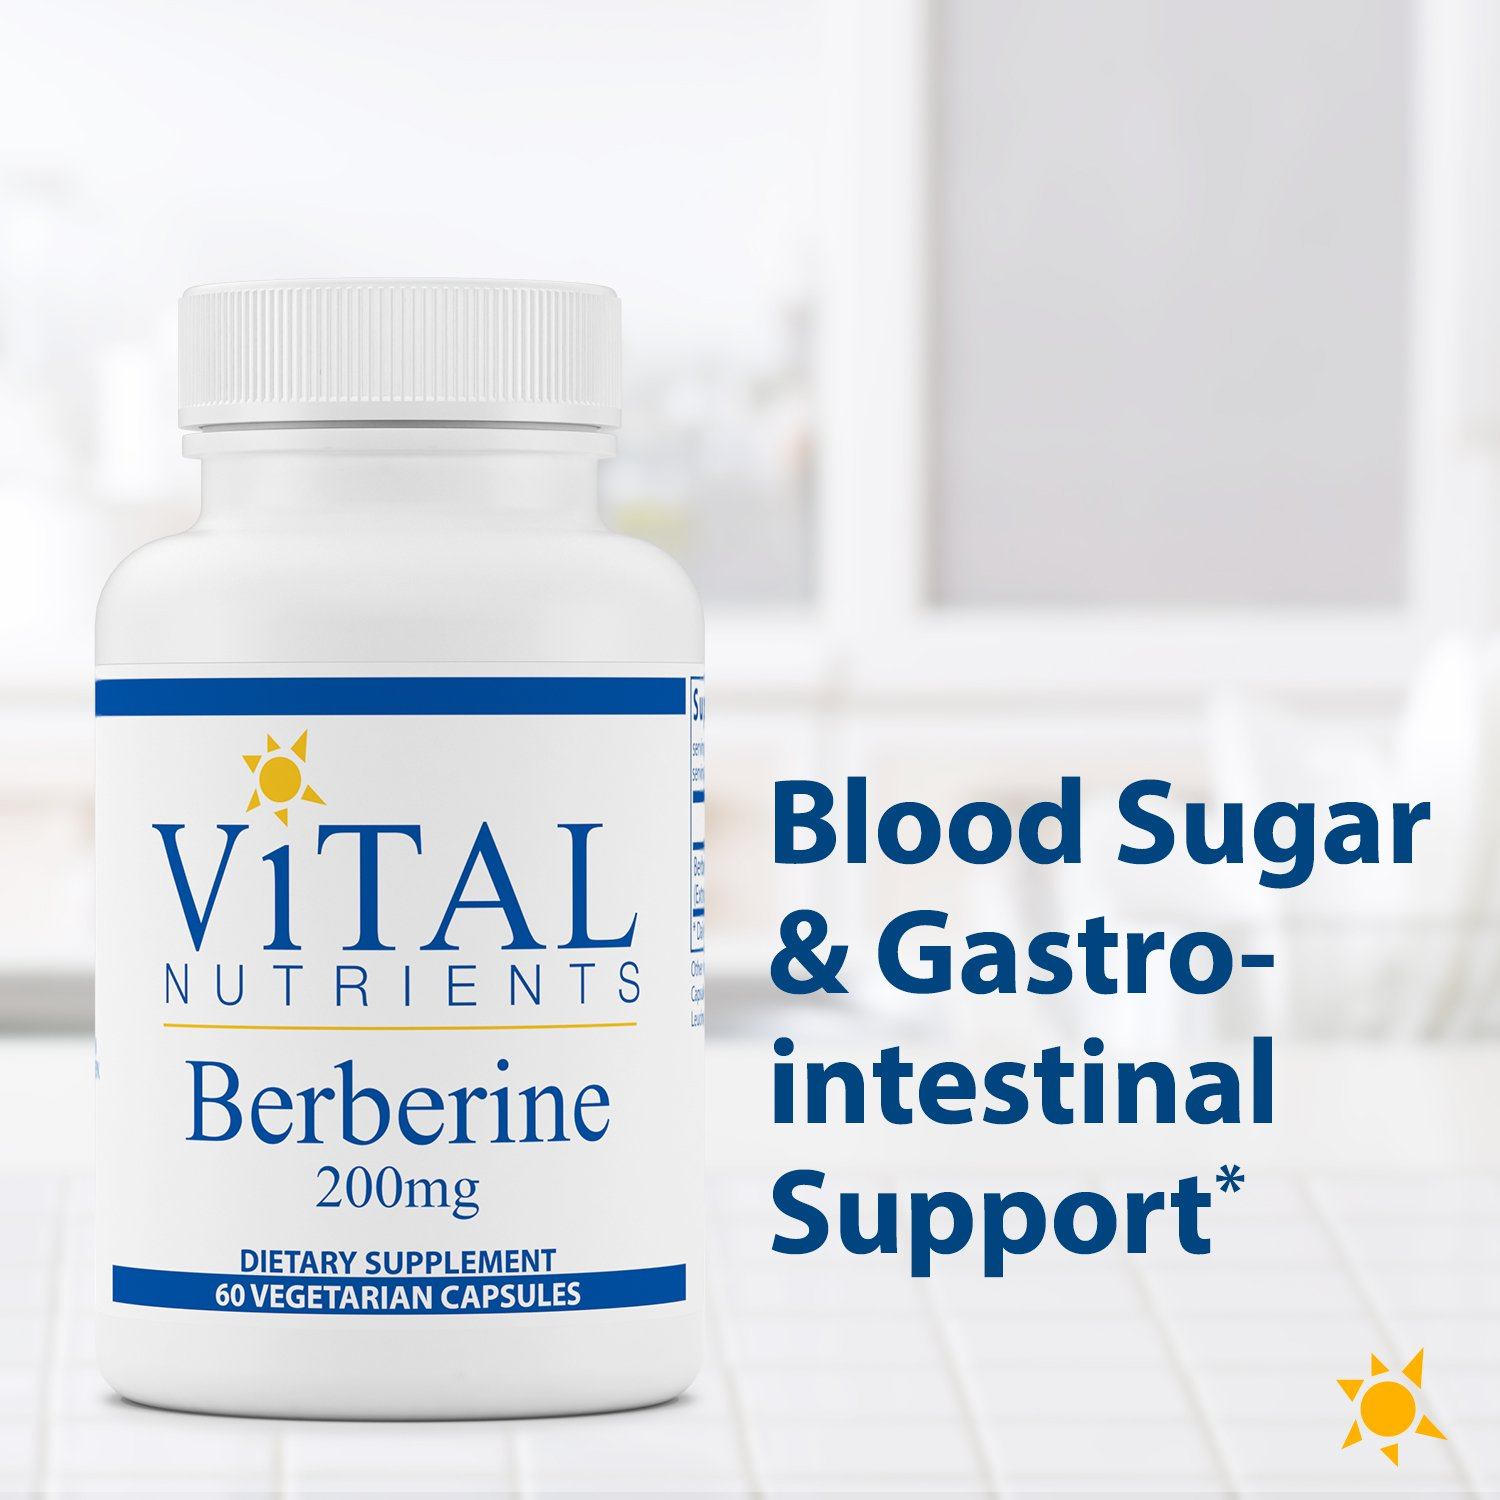 Vital Nutrients - Berberine 200 mg - Supports Regular and Normal Bowel Function - 60 Capsules by Vital Nutrients (Image #3)